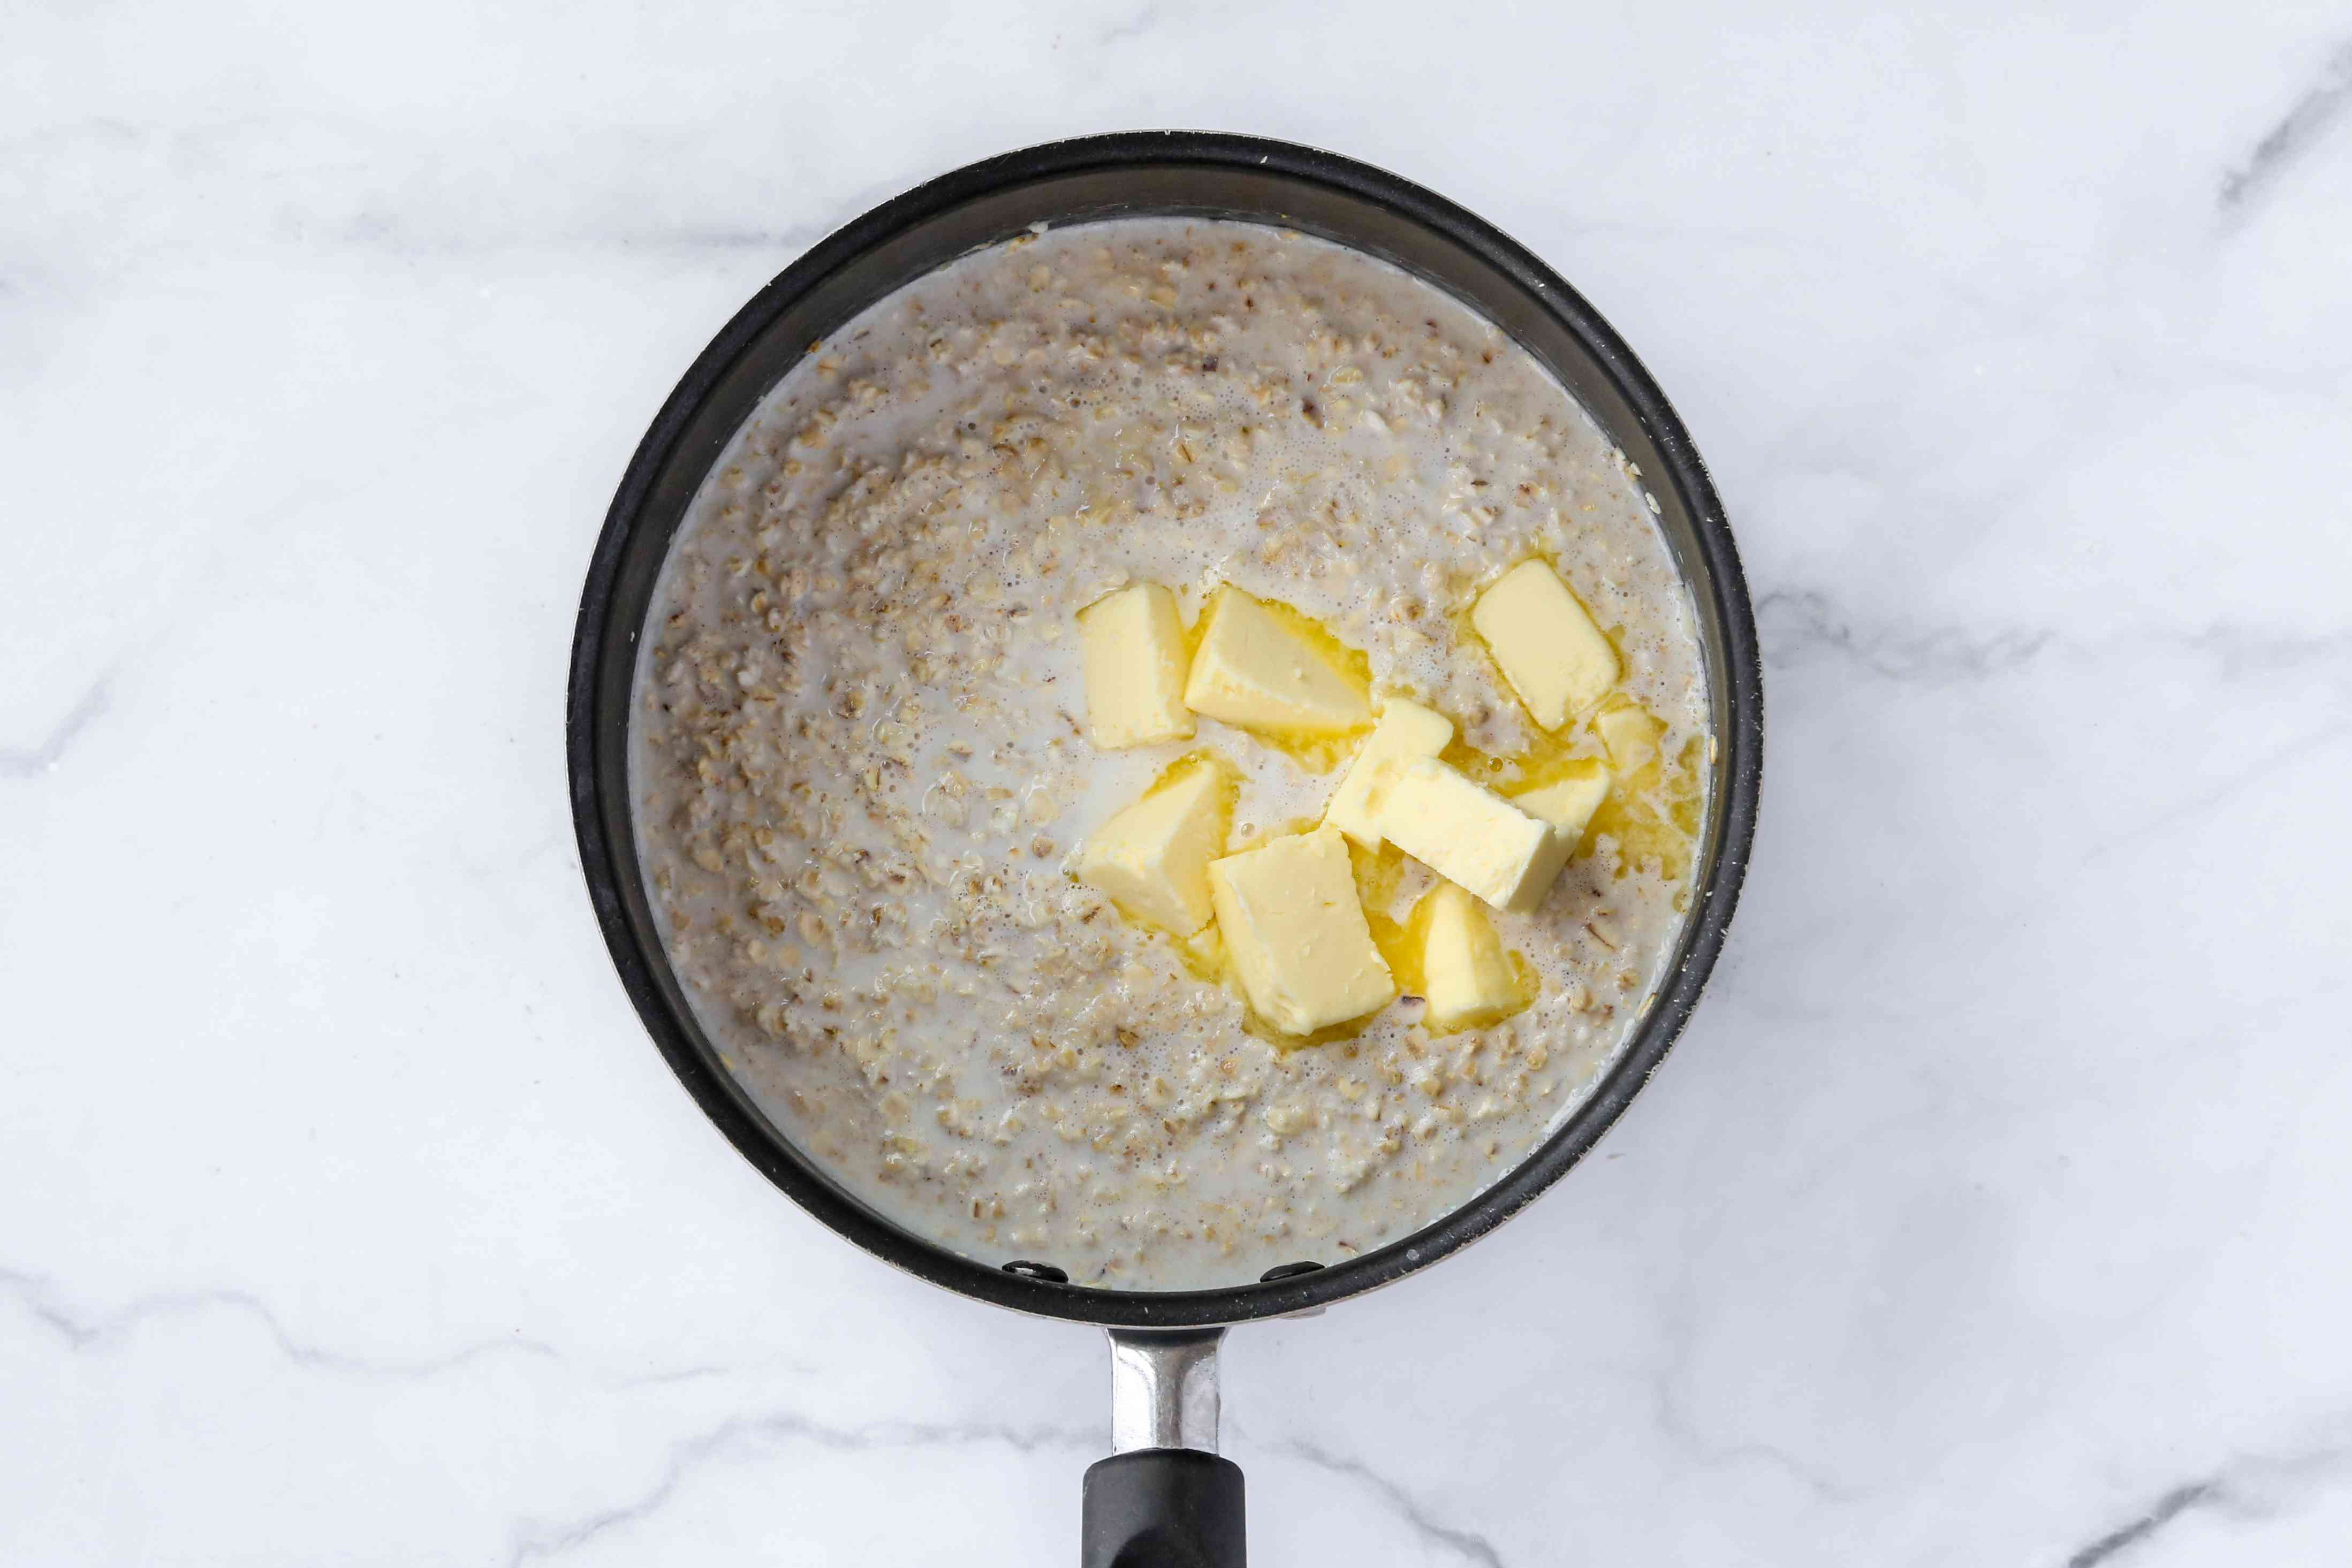 butter added to the oatmeal mixture in the saucepan